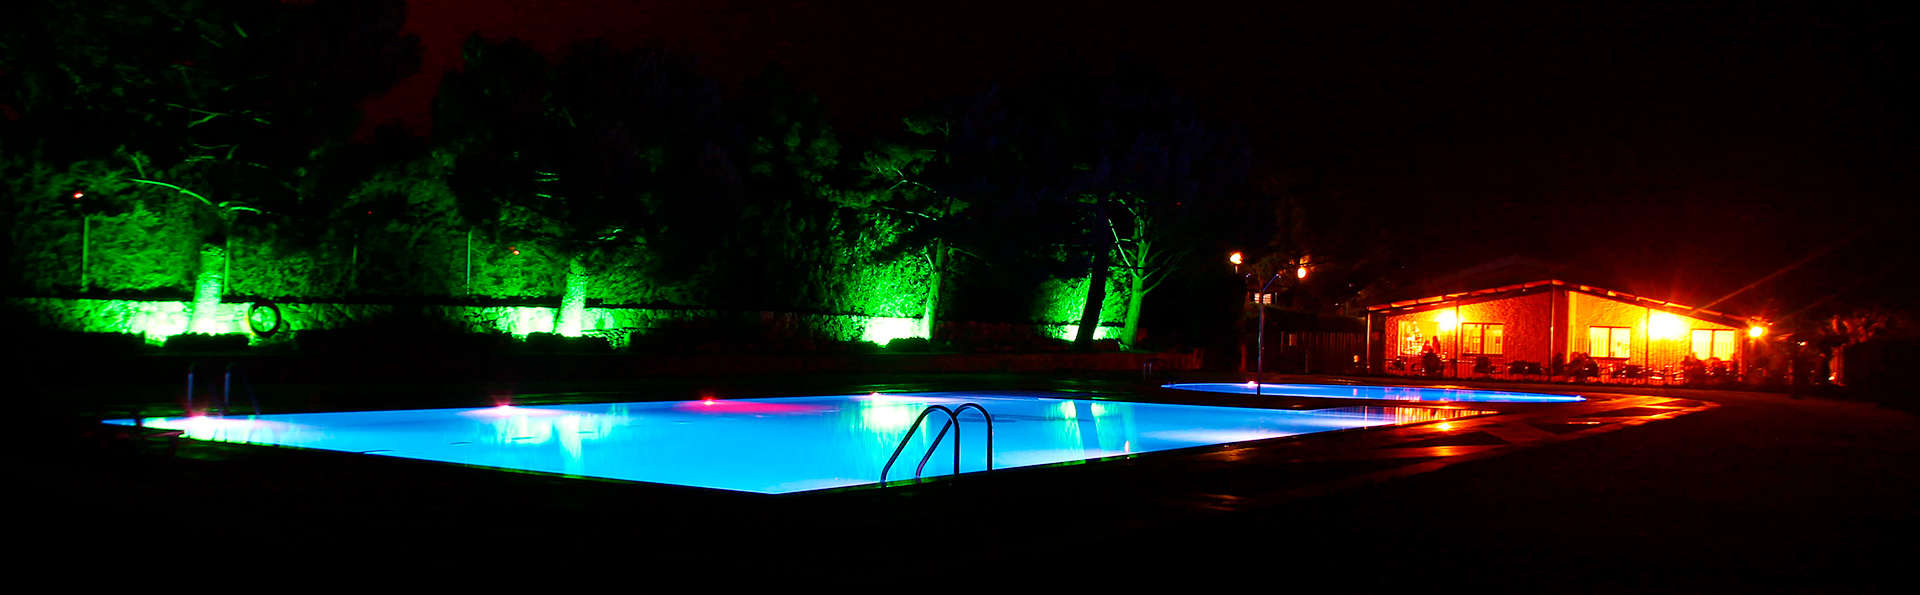 Prades Park Camping & Bungalow - edit_pool.jpg